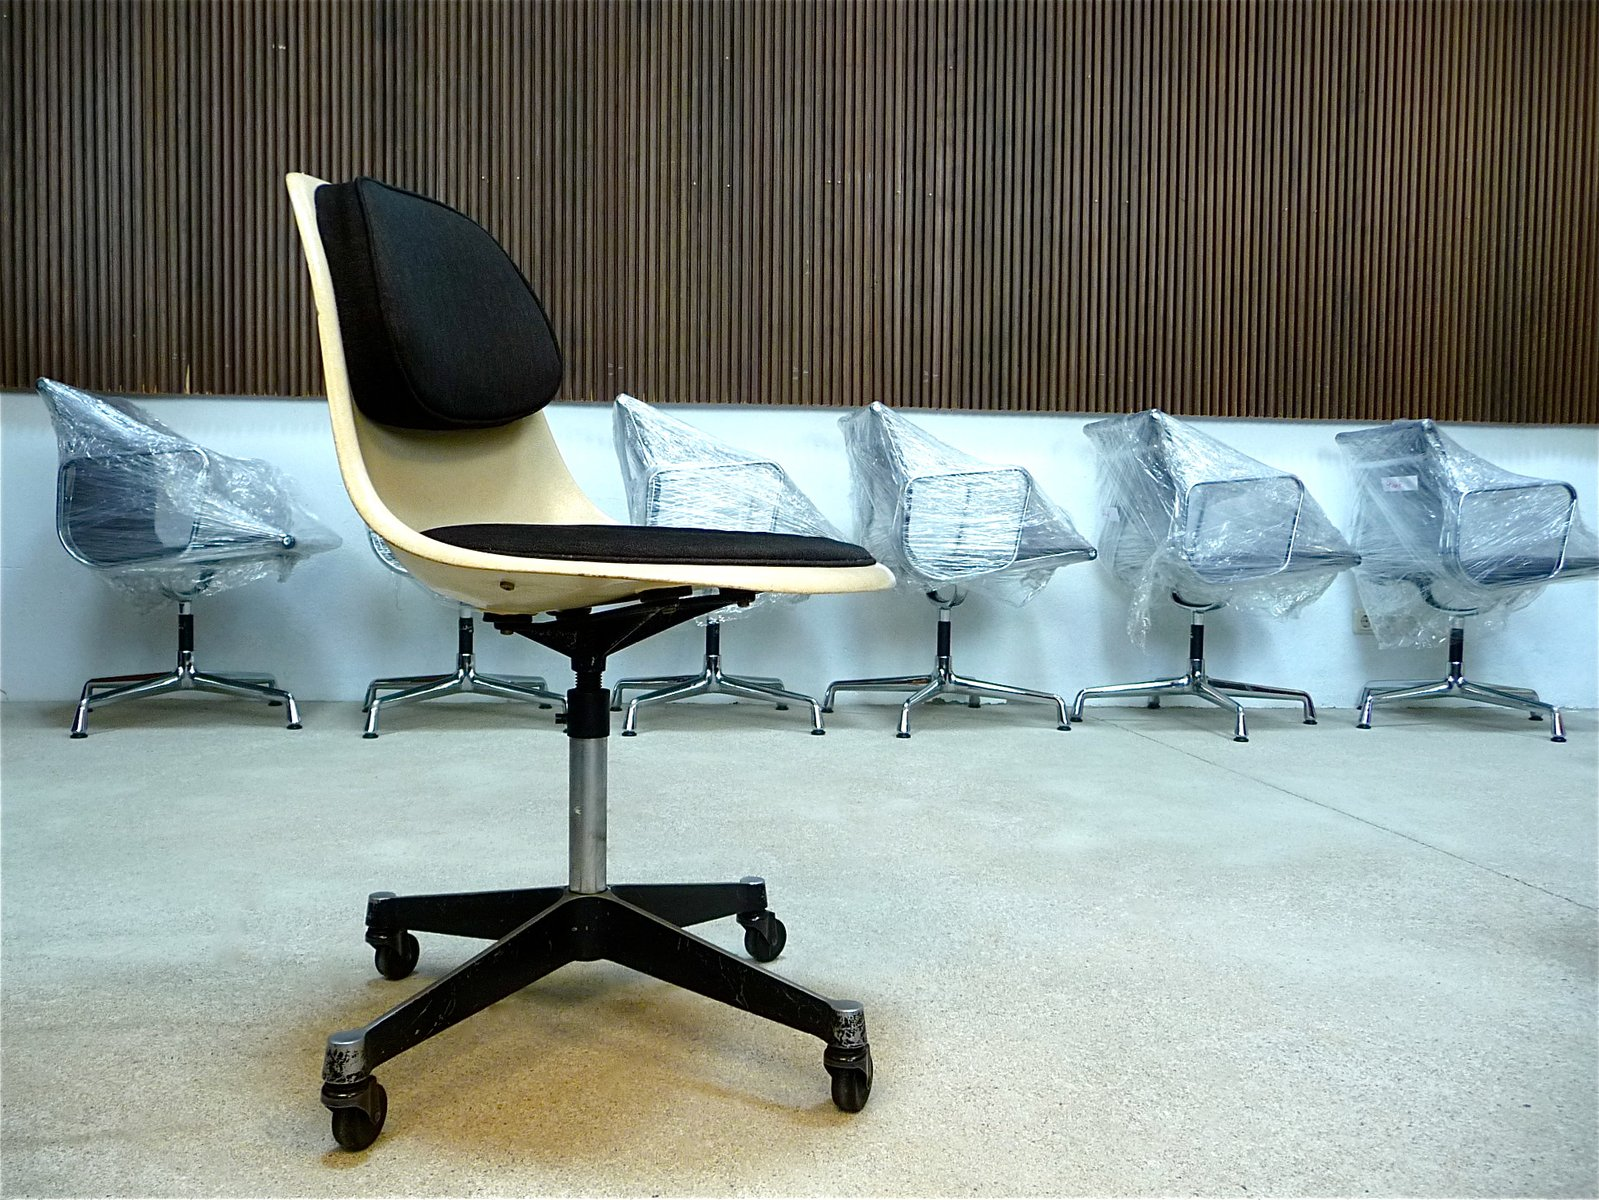 PSCC 4 fice Chair by Charles & Ray Eames for Herman Miller for